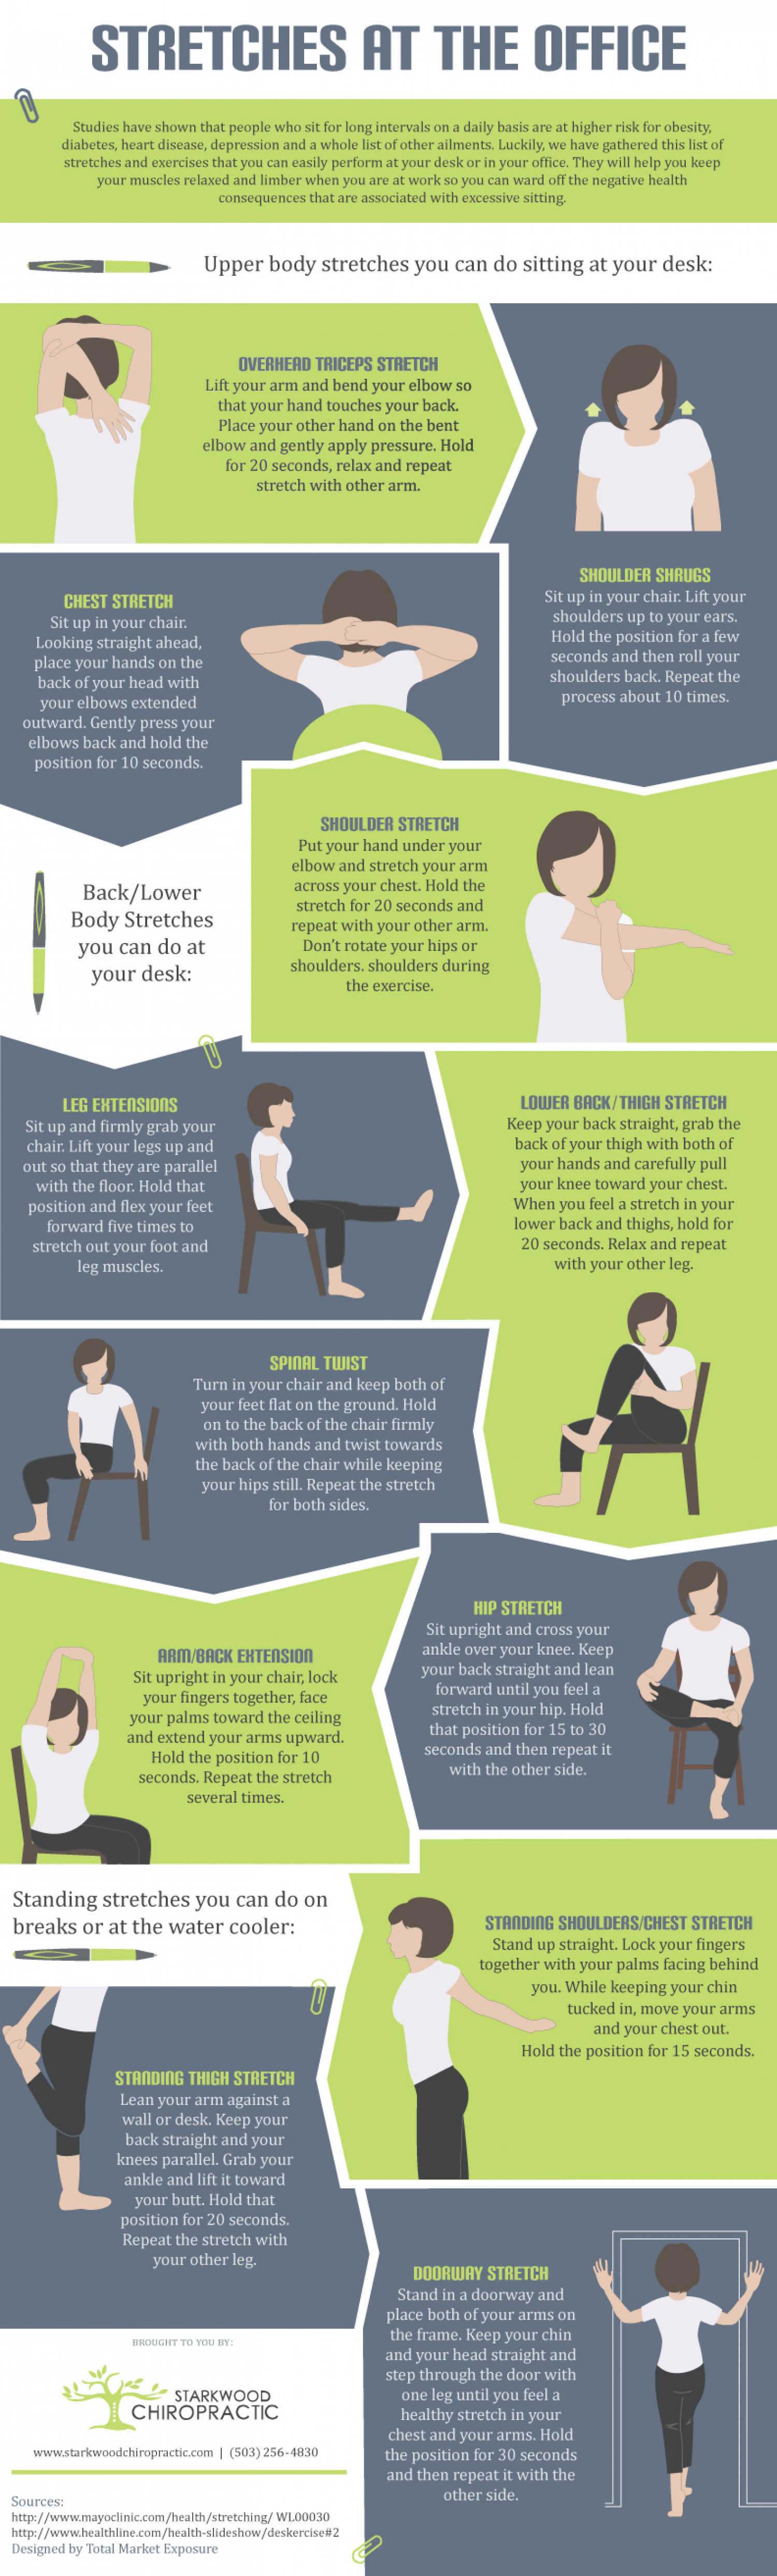 Portland Chiropractor Tips for Stretches at Work Infographic